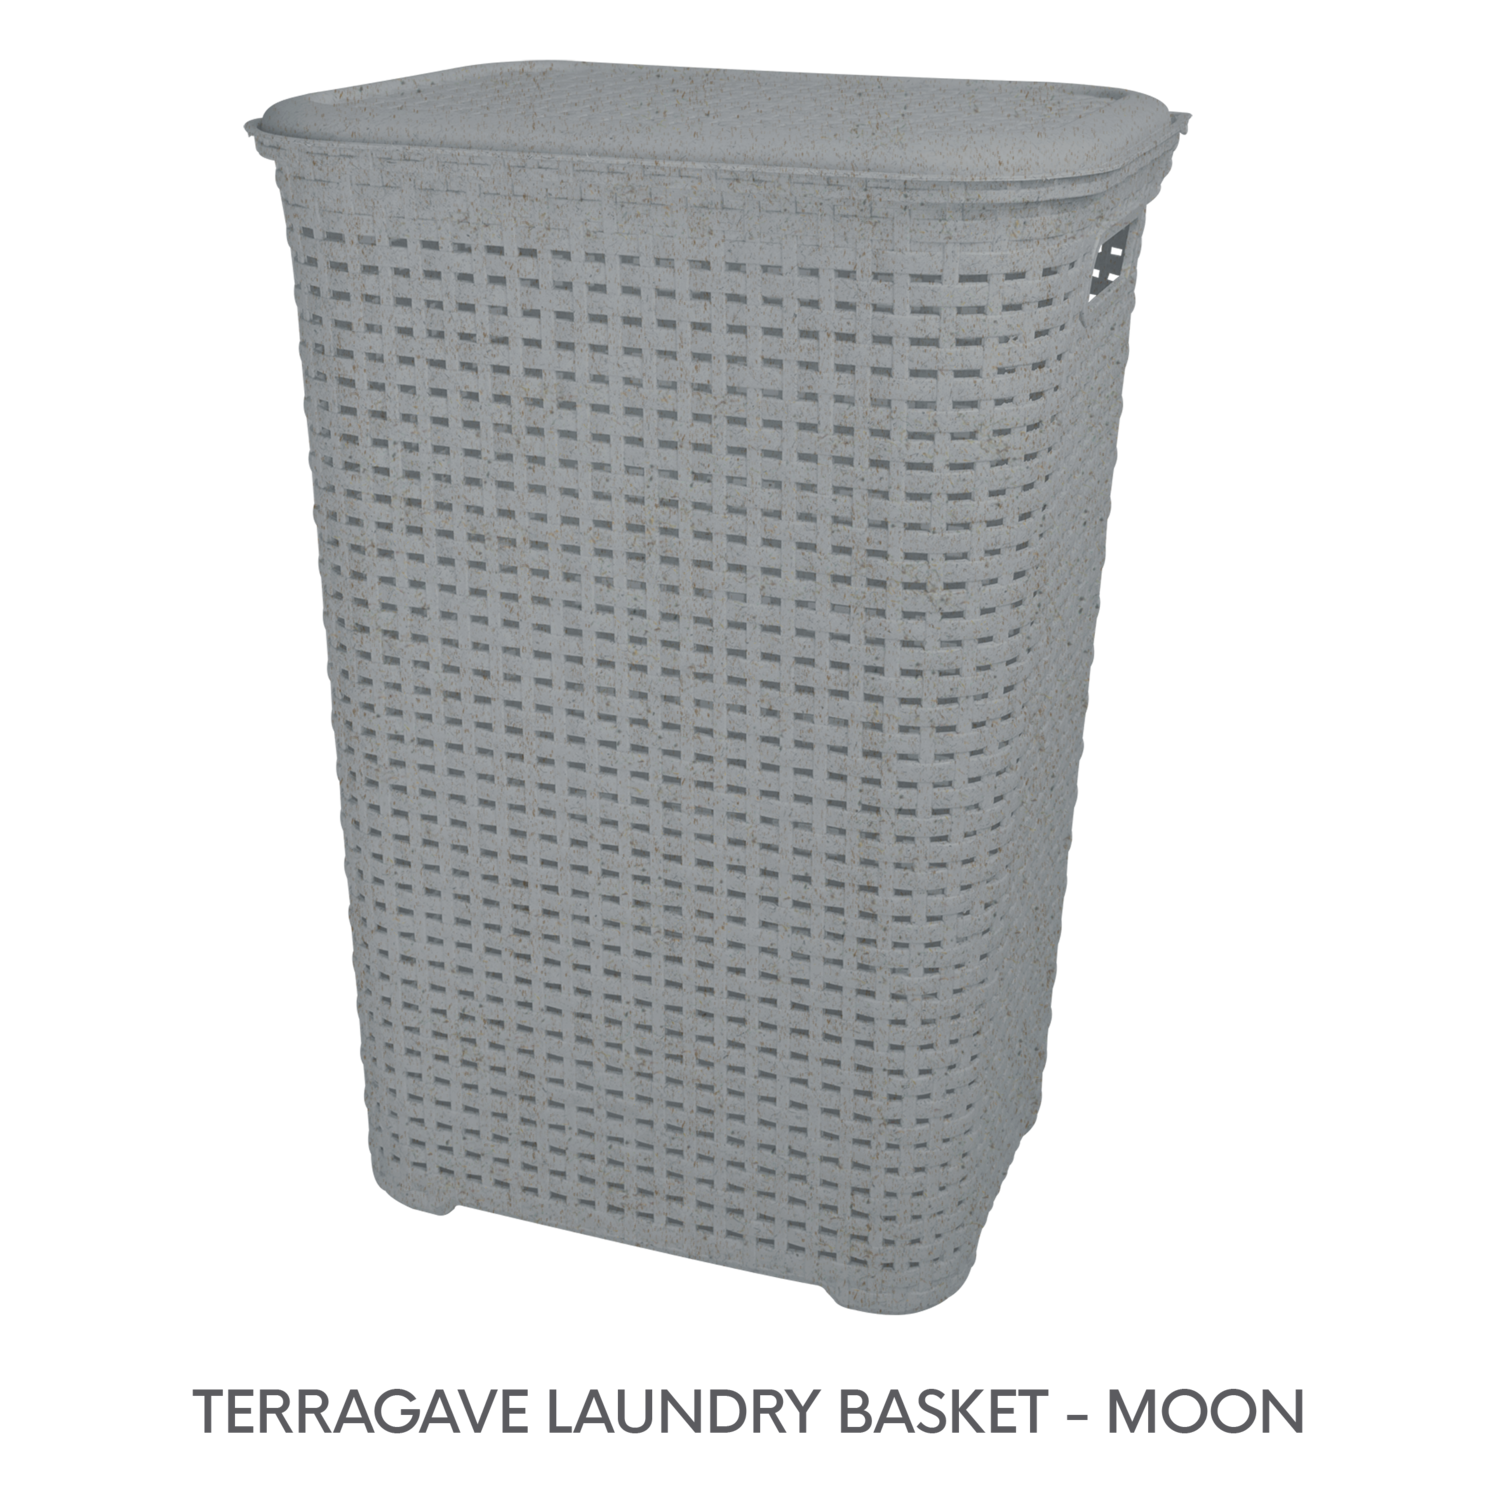 3 TERRAGAVE LAUNDRY BASKET - MOON.png